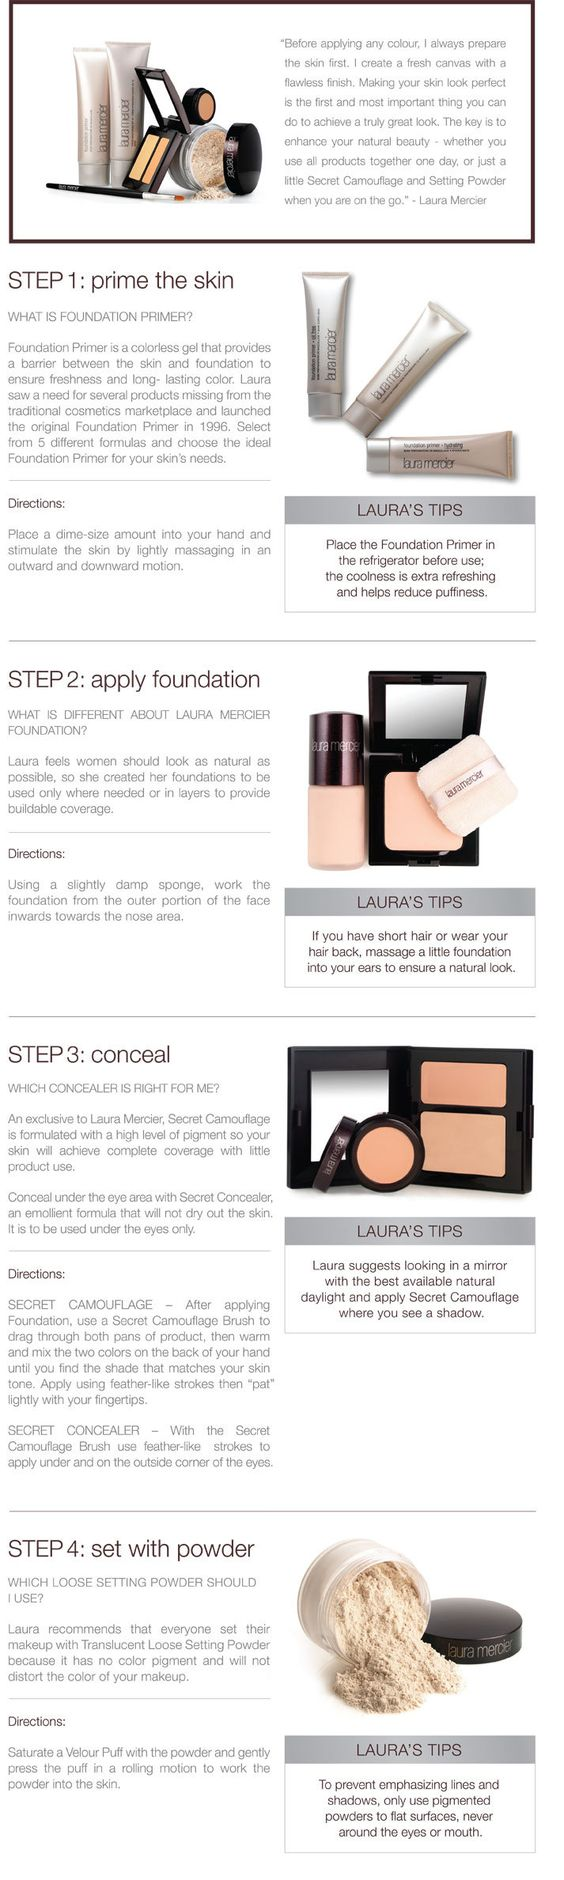 the flawless face (laura mercier)